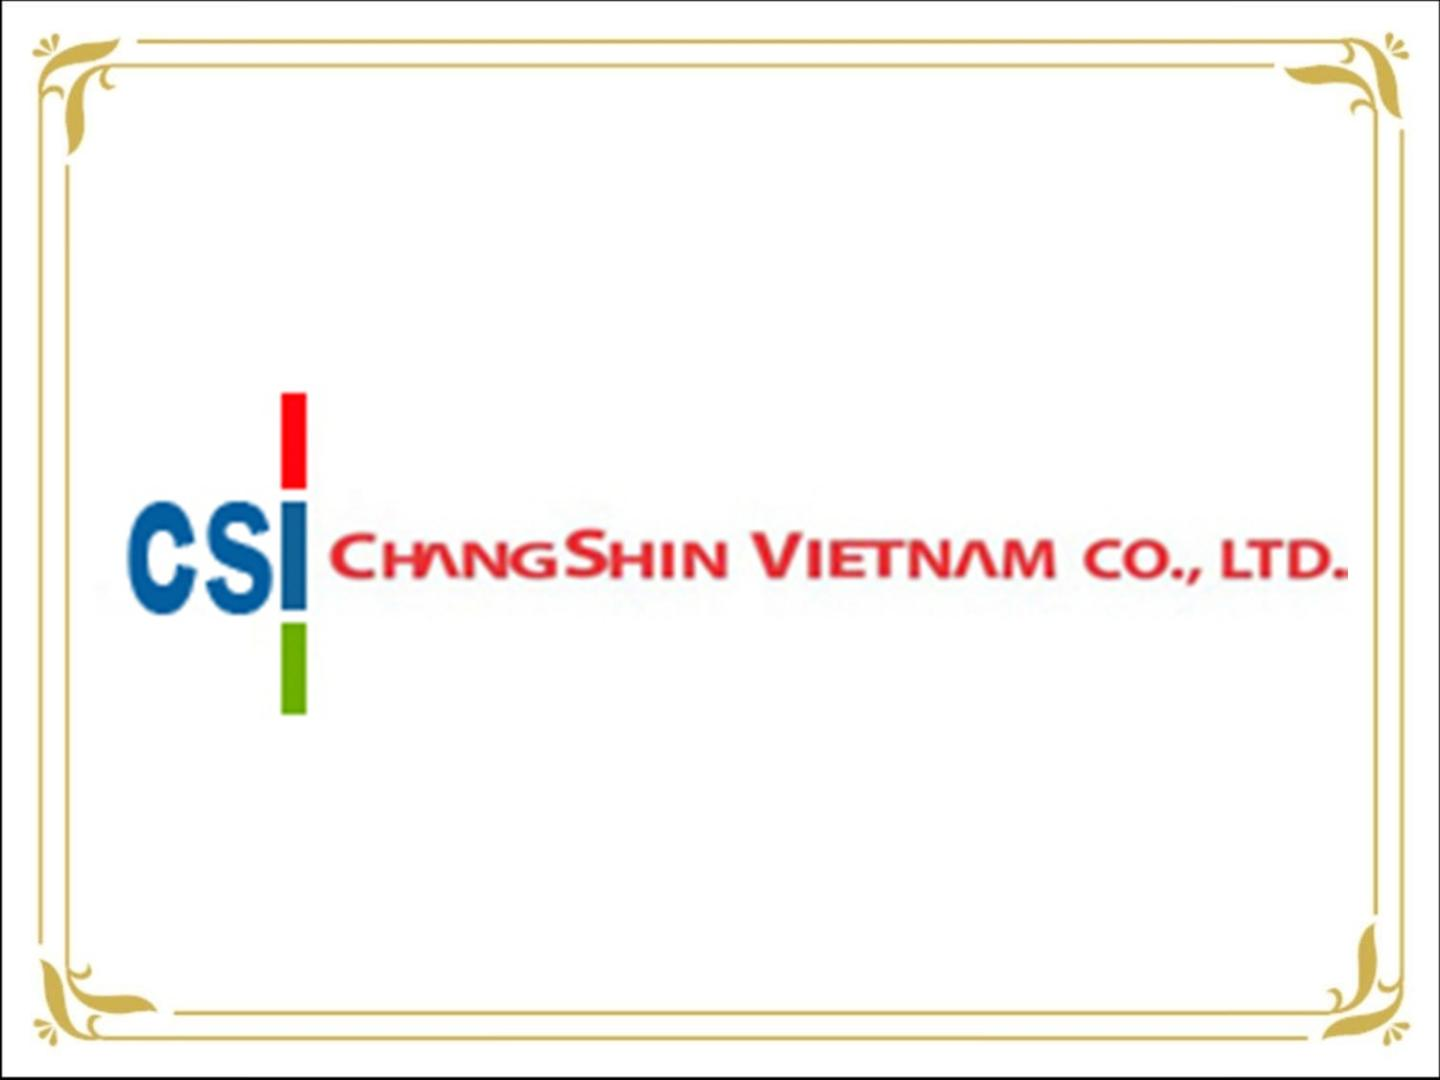 CHANG SHIN VIETNAM CO., LTD